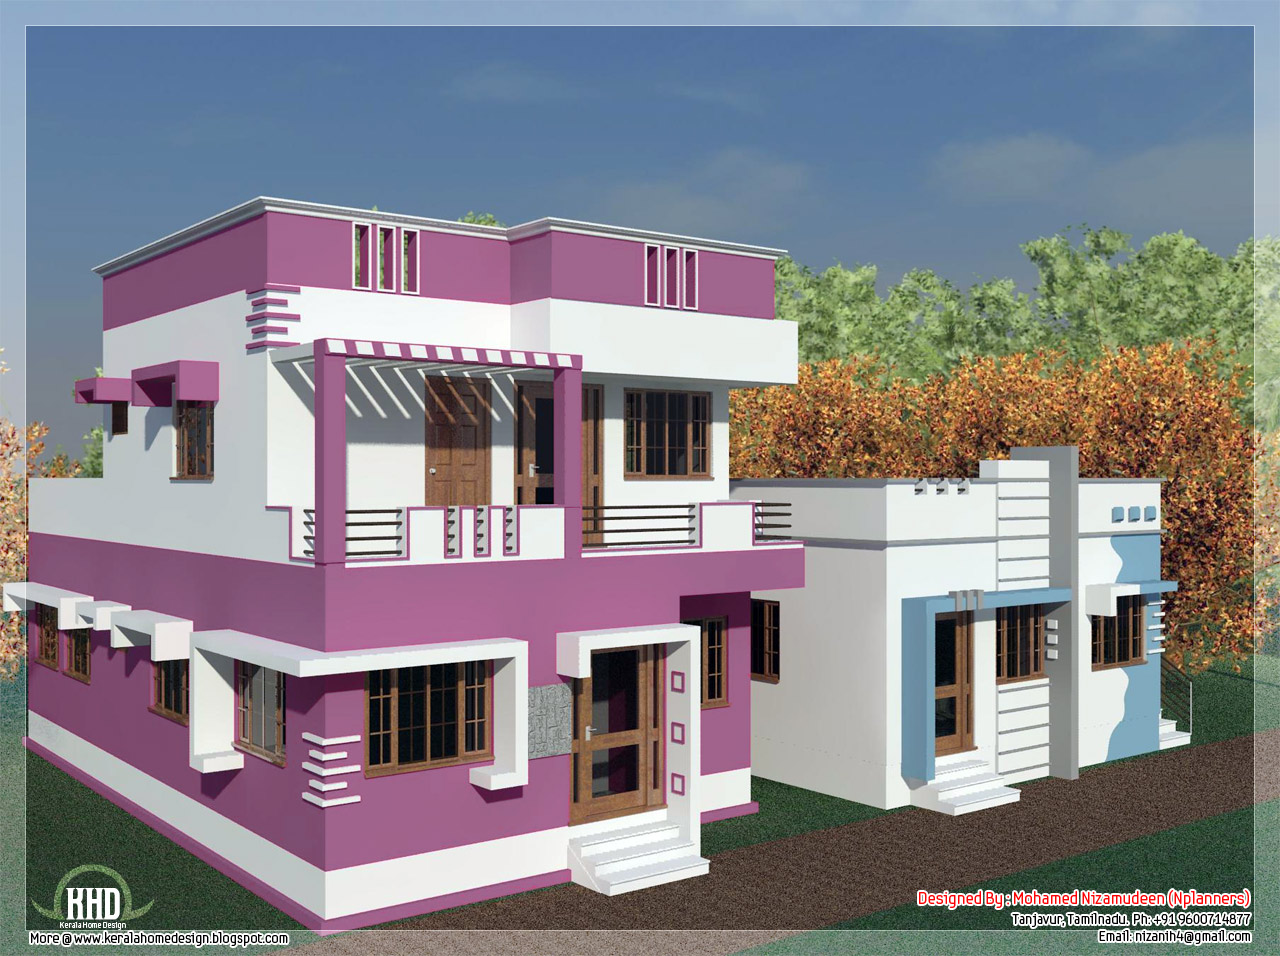 Simple Exterior House Designs In Kerala fresh housing designs | architecture-nice